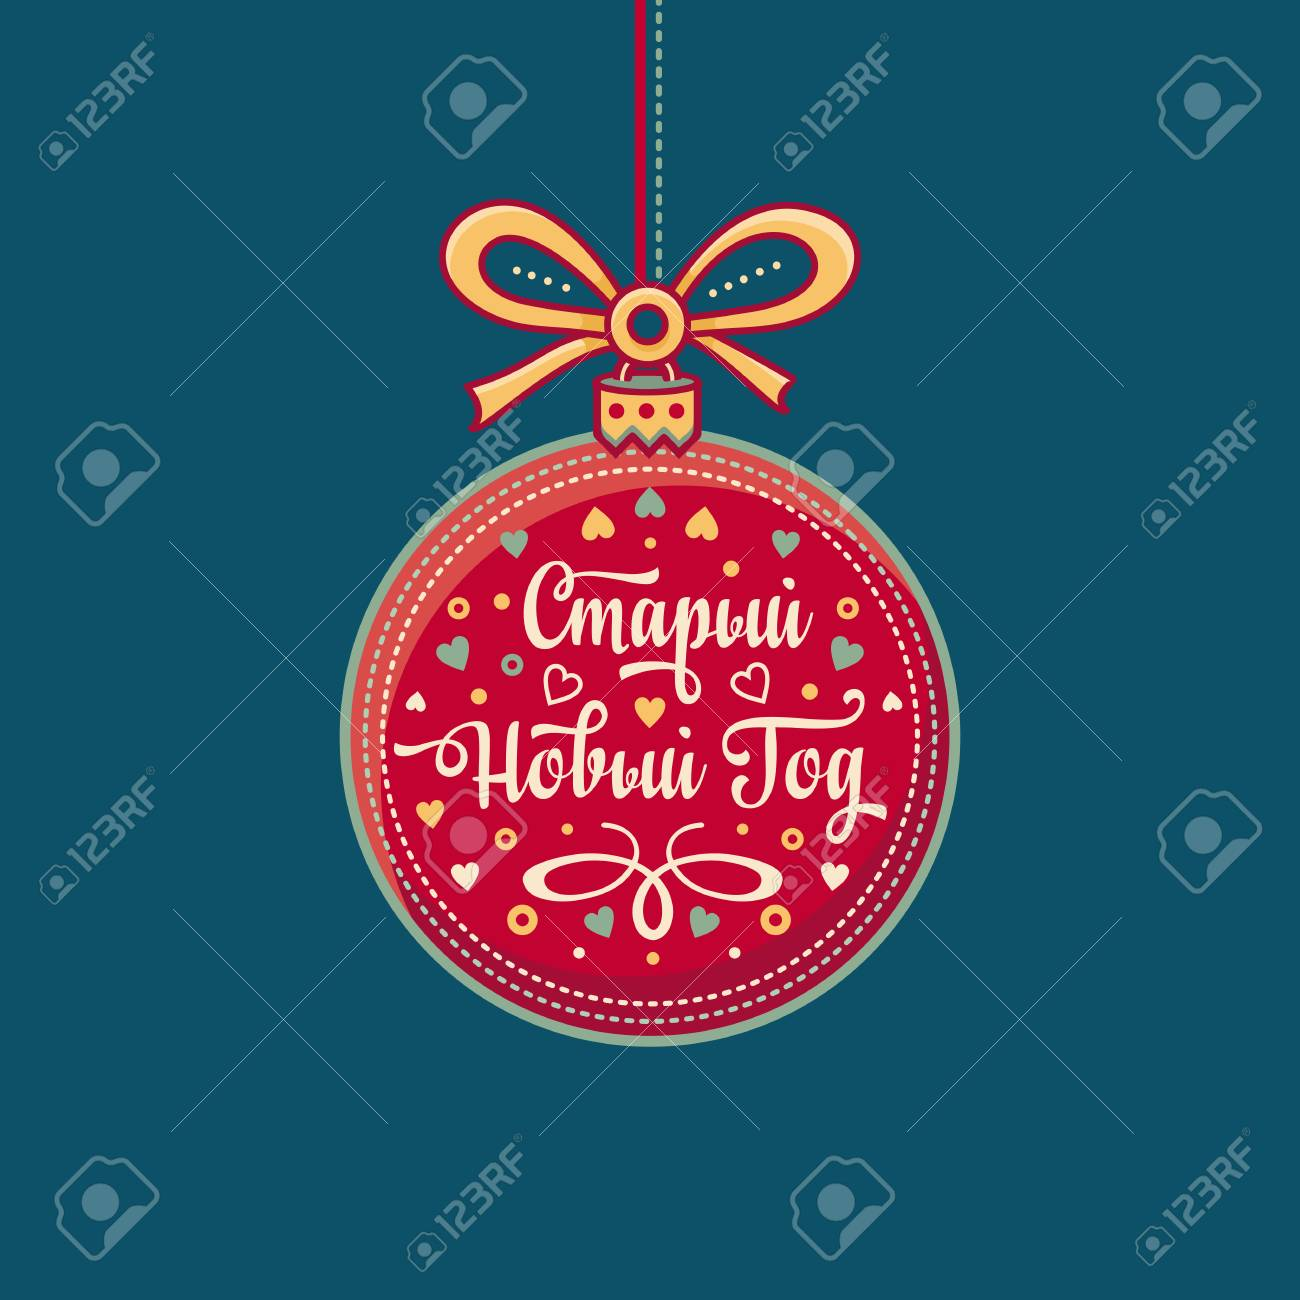 Old new year greeting card cyrillic russian font happy new greeting card cyrillic russian font happy new year message kristyandbryce Choice Image